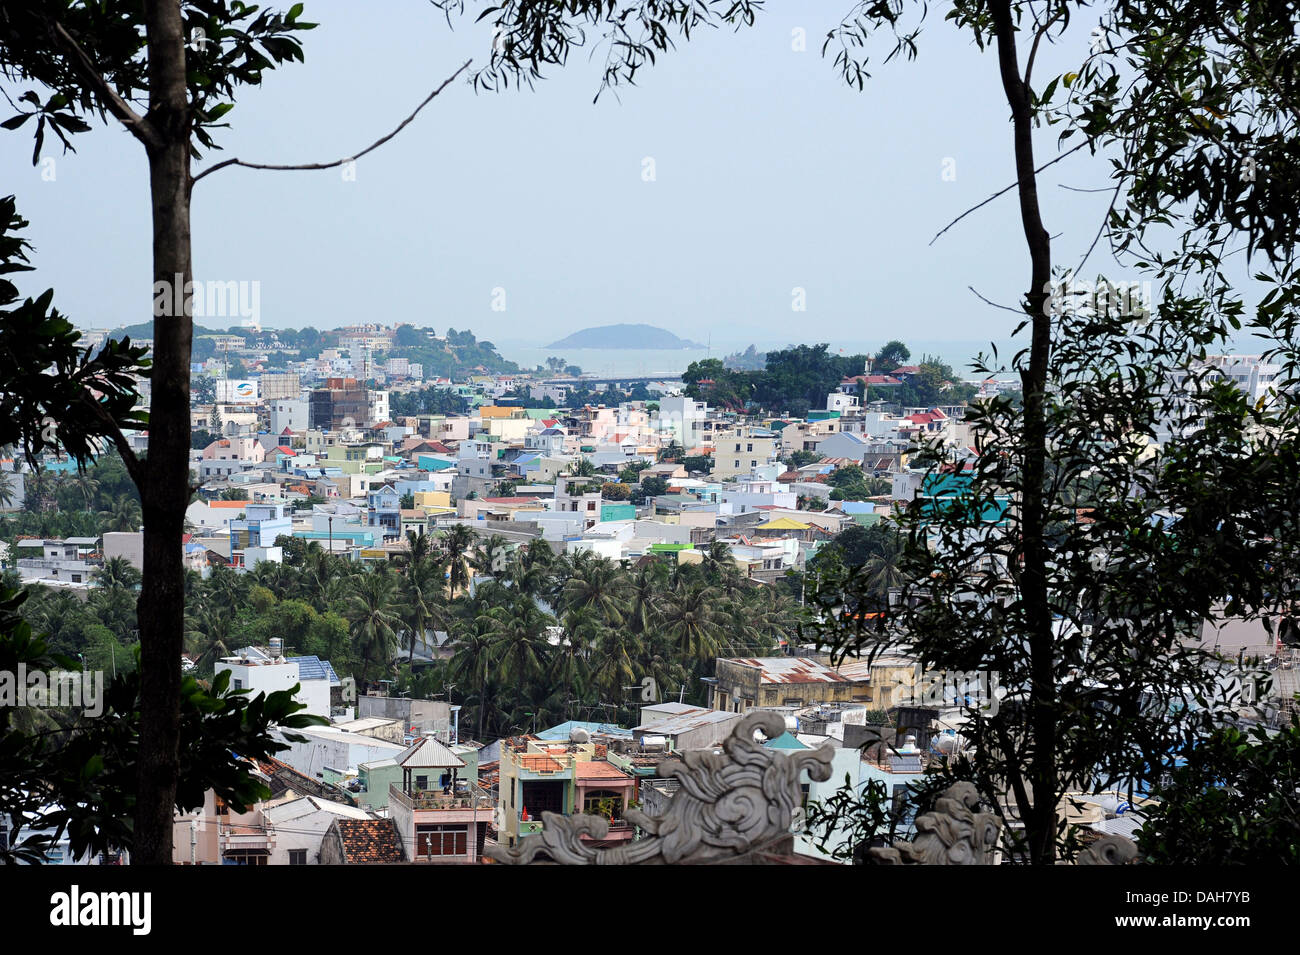 View across Nha Trang from Po Nagar Cham Towers, Kauthara, Vietnam. - Stock Image